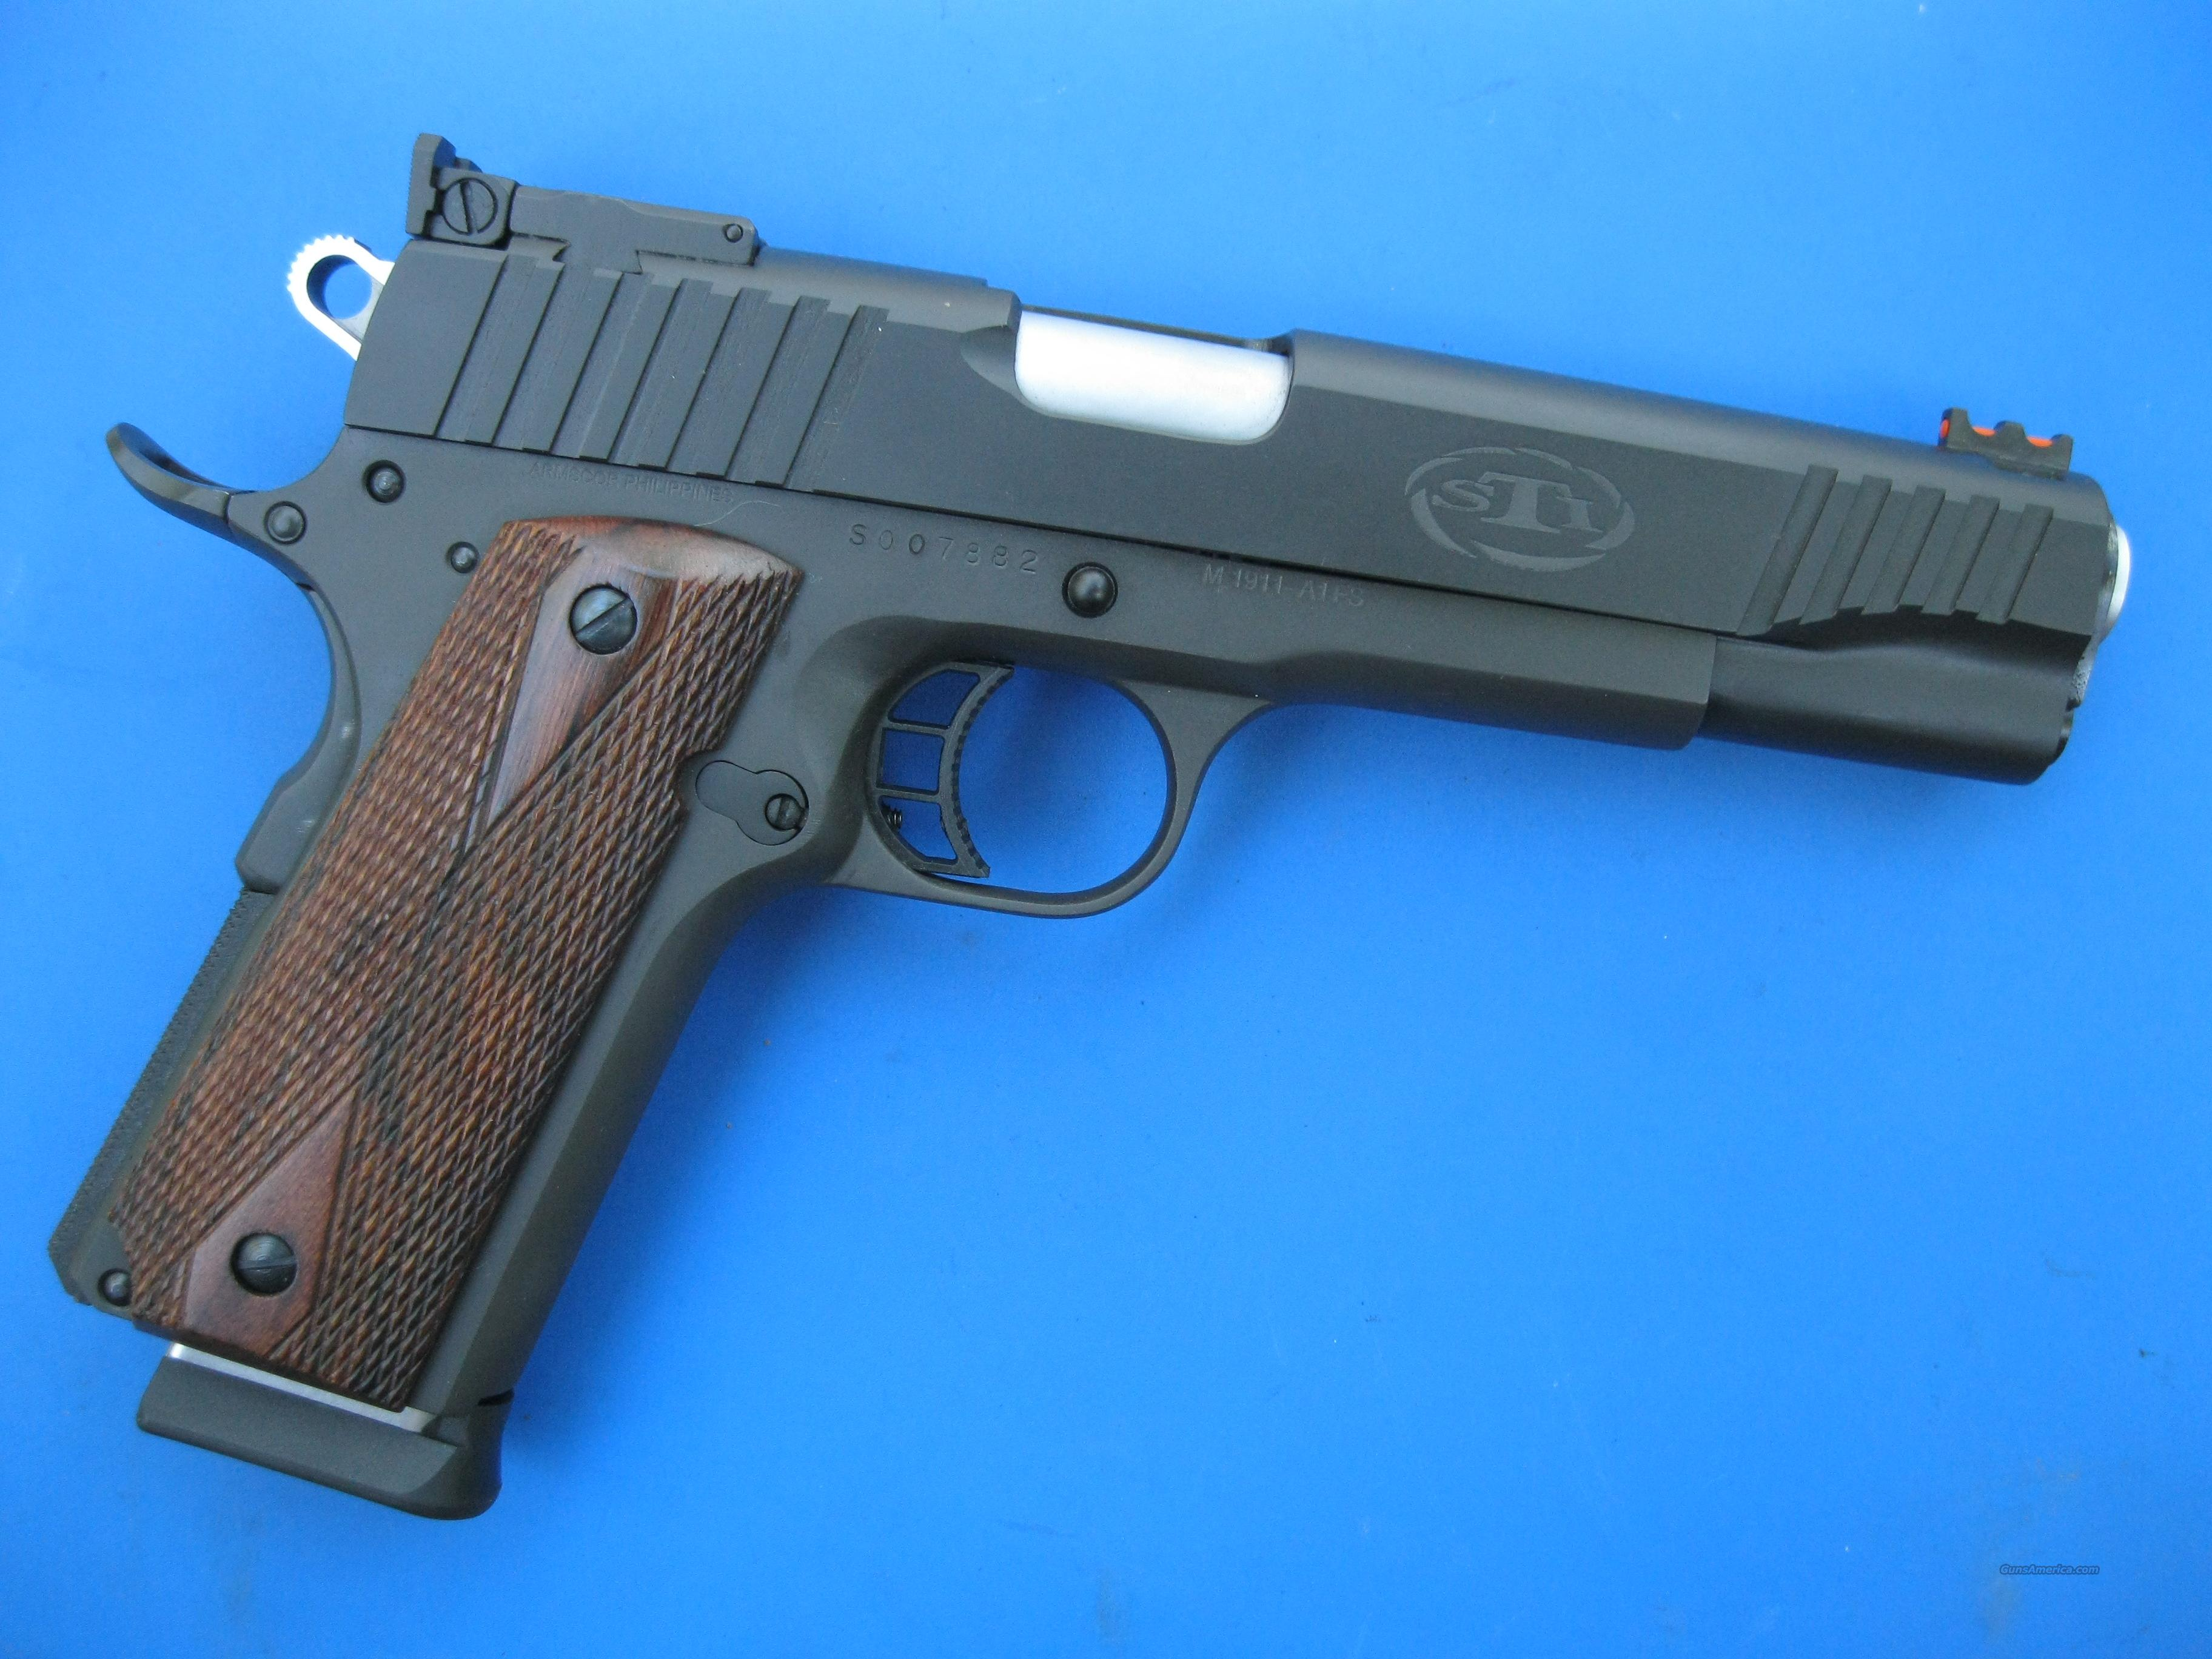 STI Spartan 45 acp 1911 *NEW* No fee CC *FREE SHIP  Guns > Pistols > STI Pistols